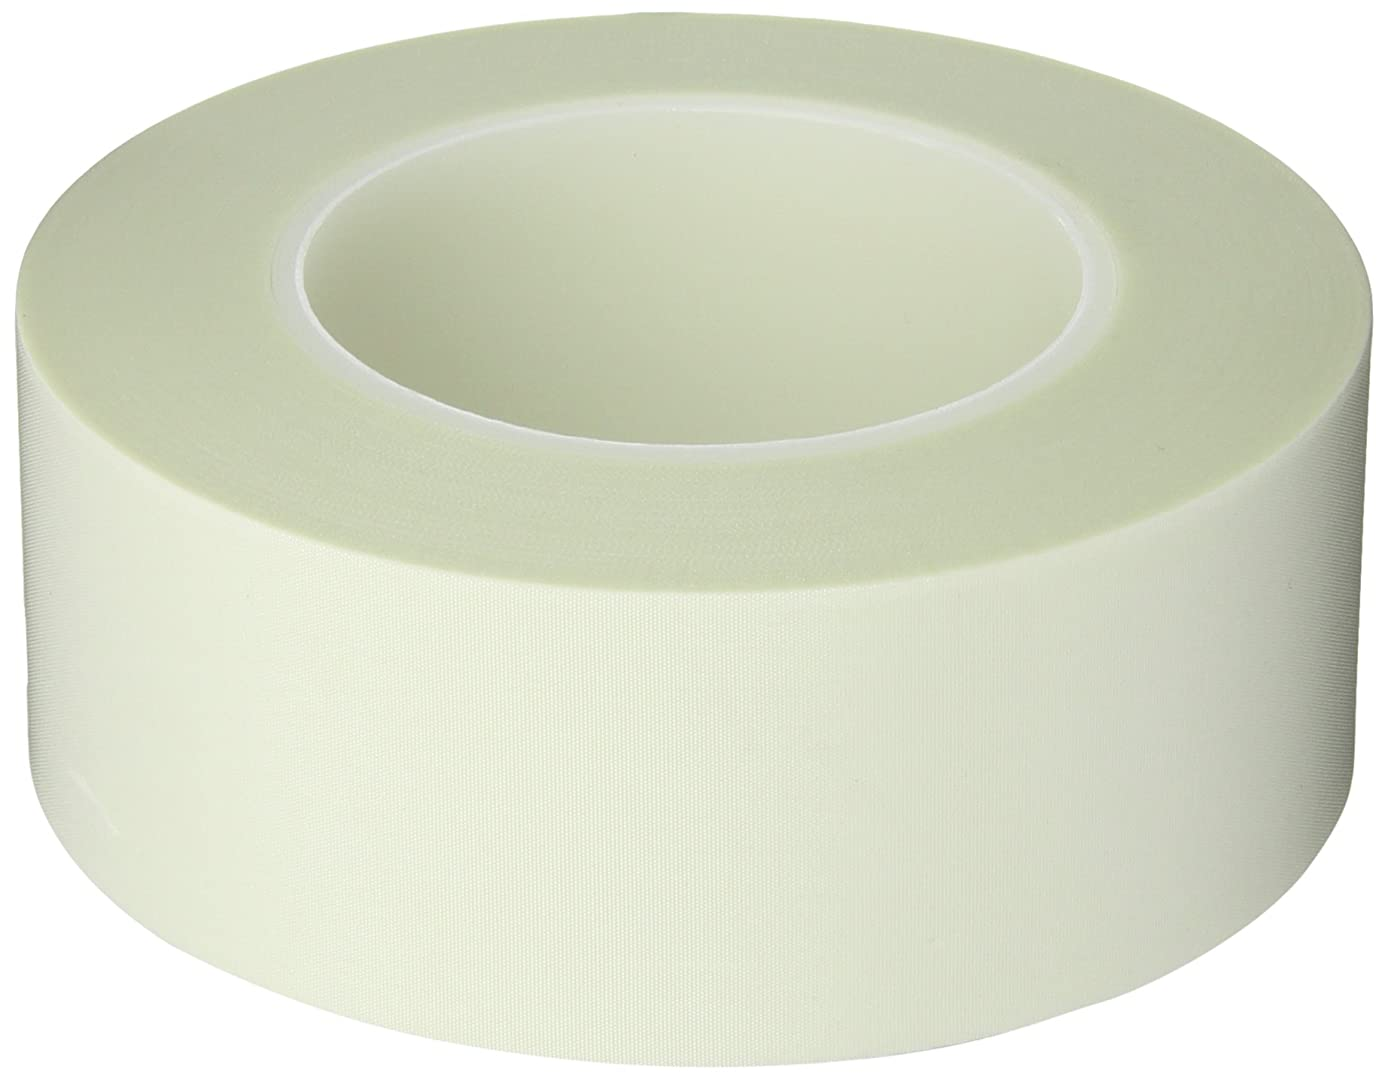 Maxi 11440 Glass Cloth Single Coated Tape with Thermosetting Rubber Adhesive, 7.6 mil Thick, 60 yds Length, 2